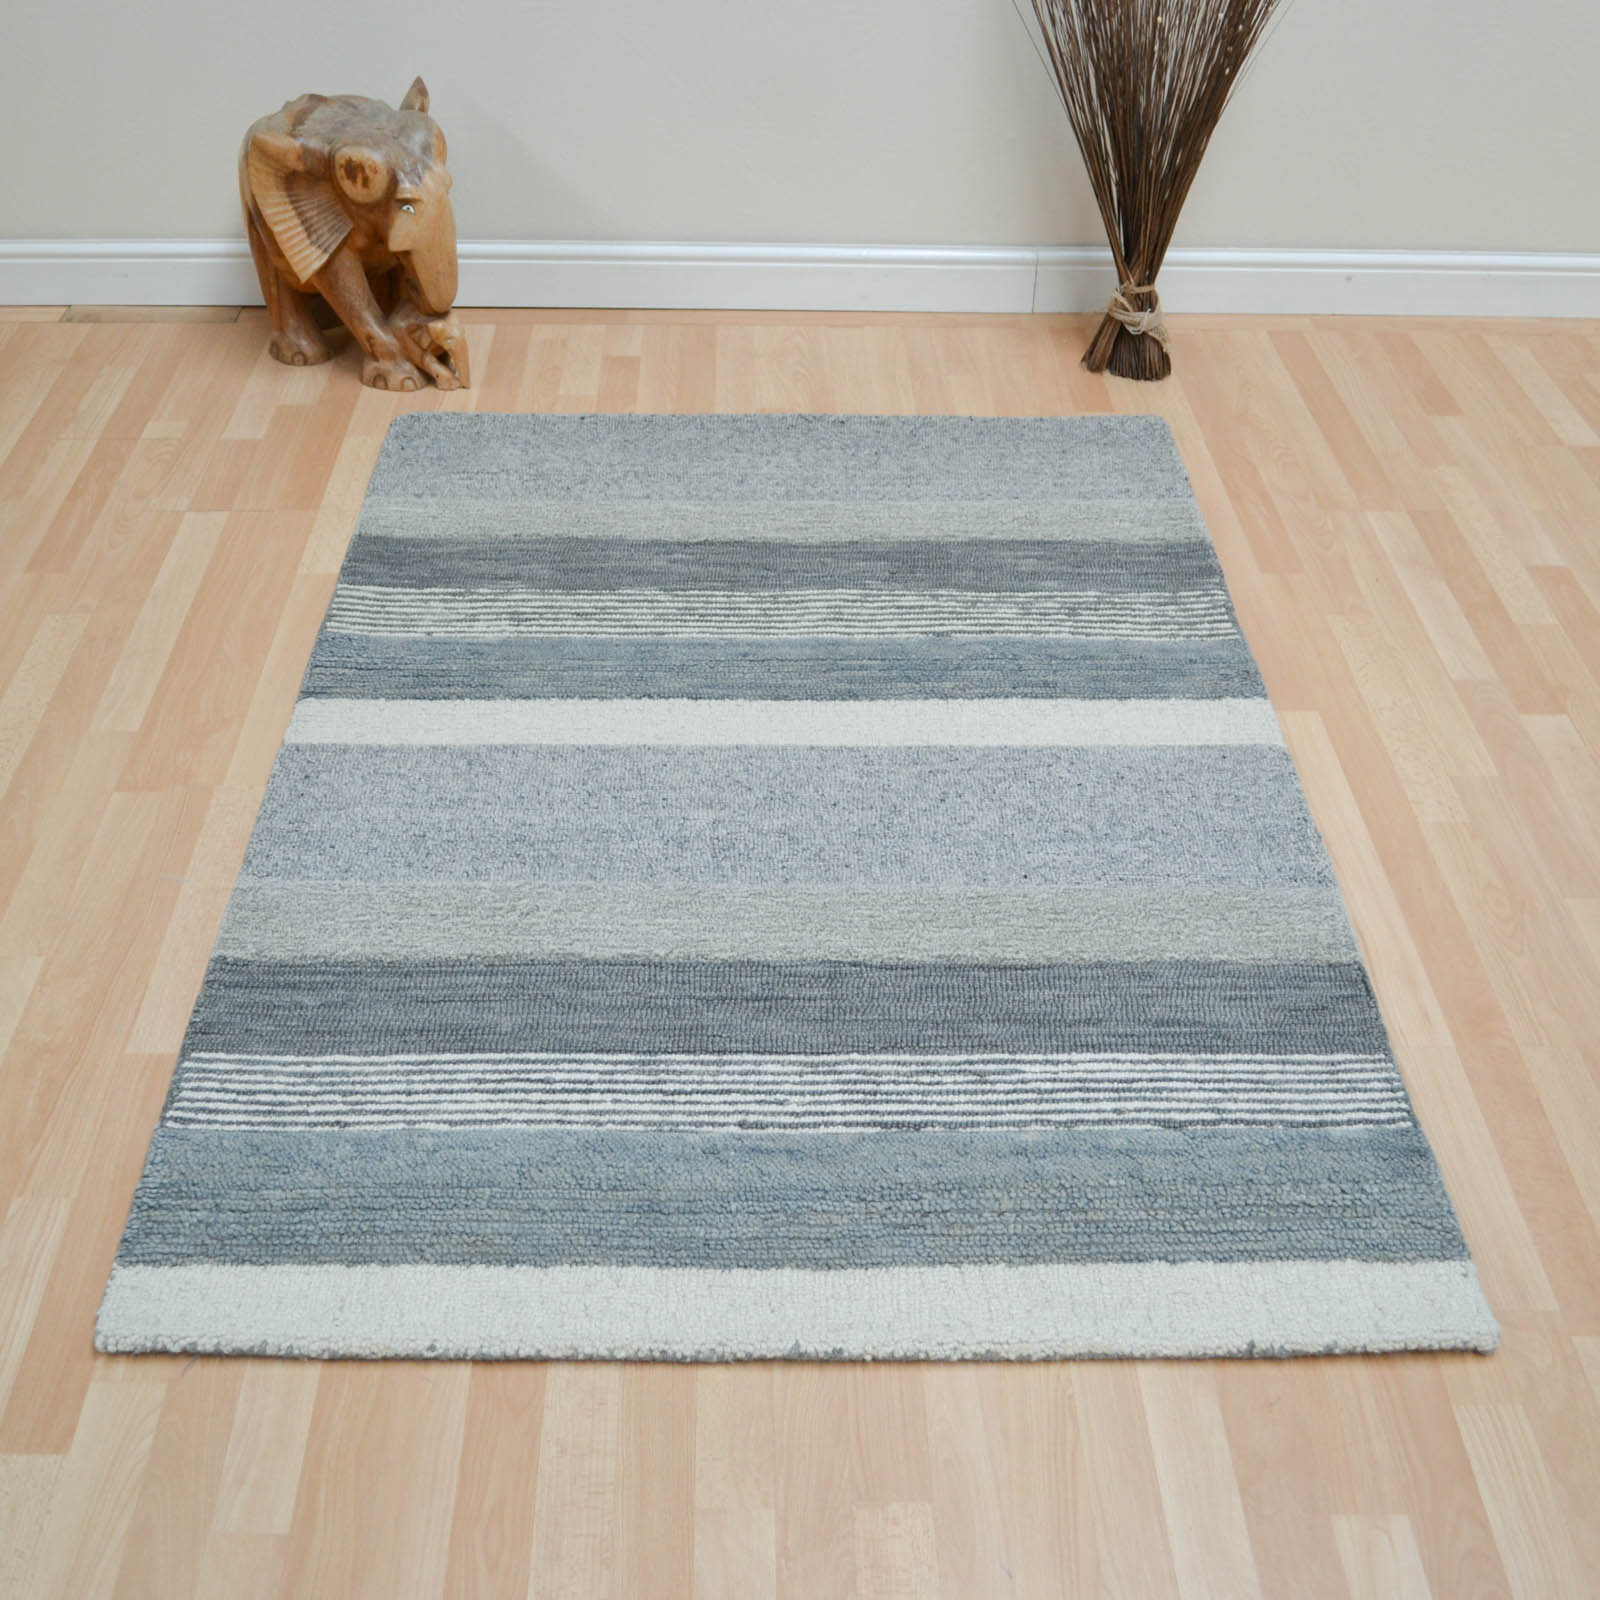 Portofino Rugs in Slate Grey